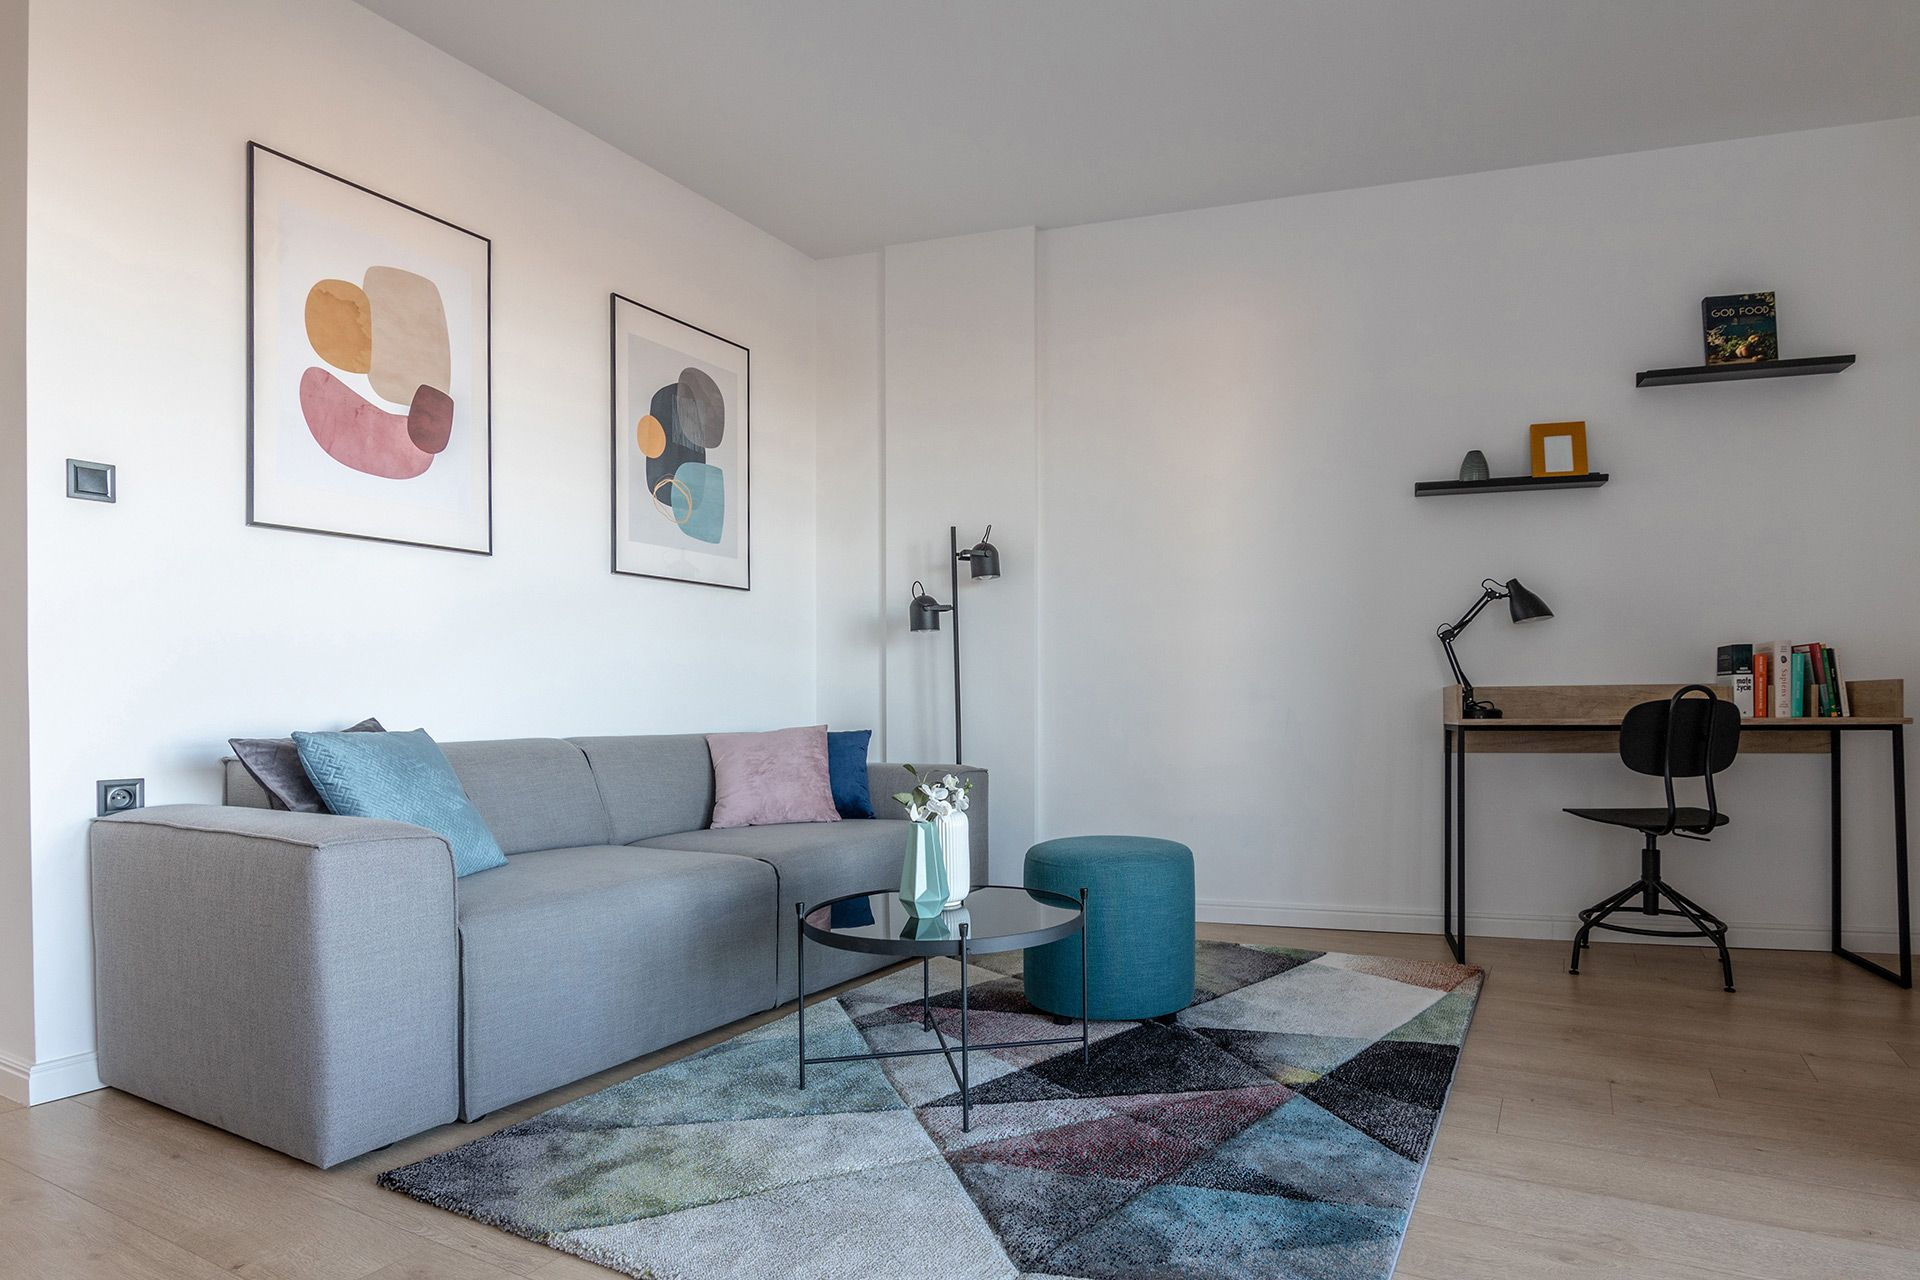 Studio - Large apartment to rent in Warsaw UPR-A-046-2